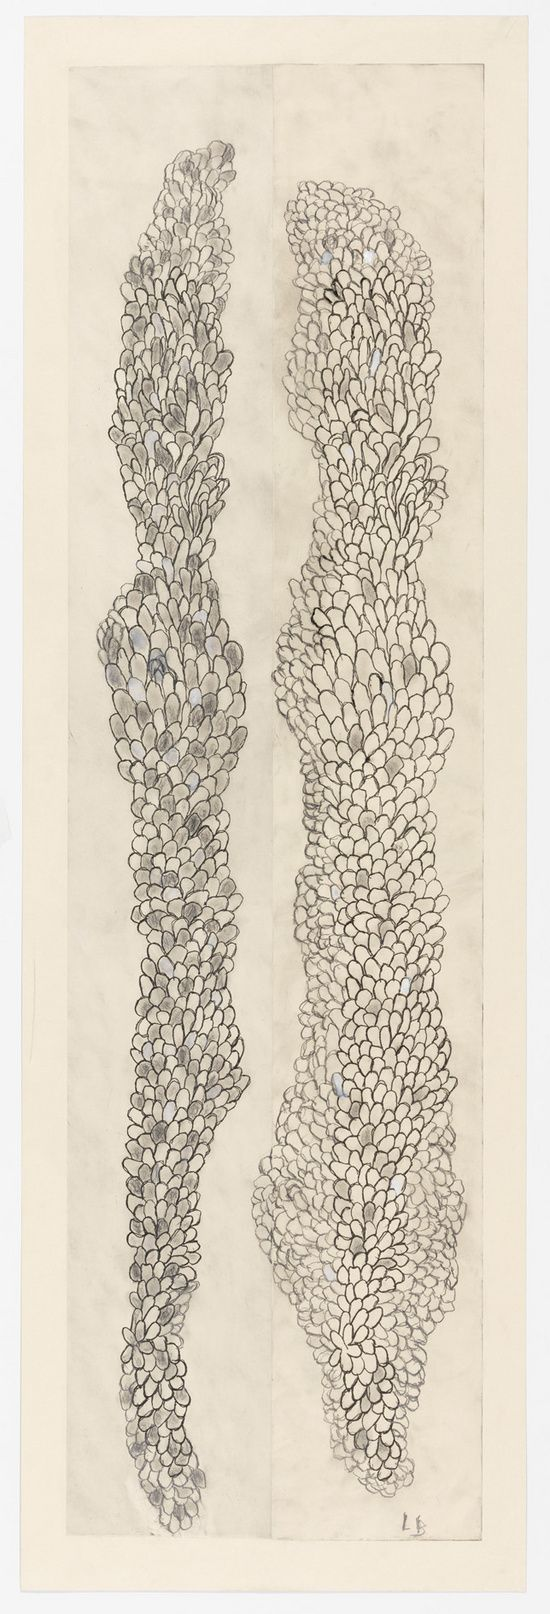 Louise Bourgeois, Tous les deux (Swaying), 2006 Etching, ink, gouache and pencil on paper 59 x 19 in